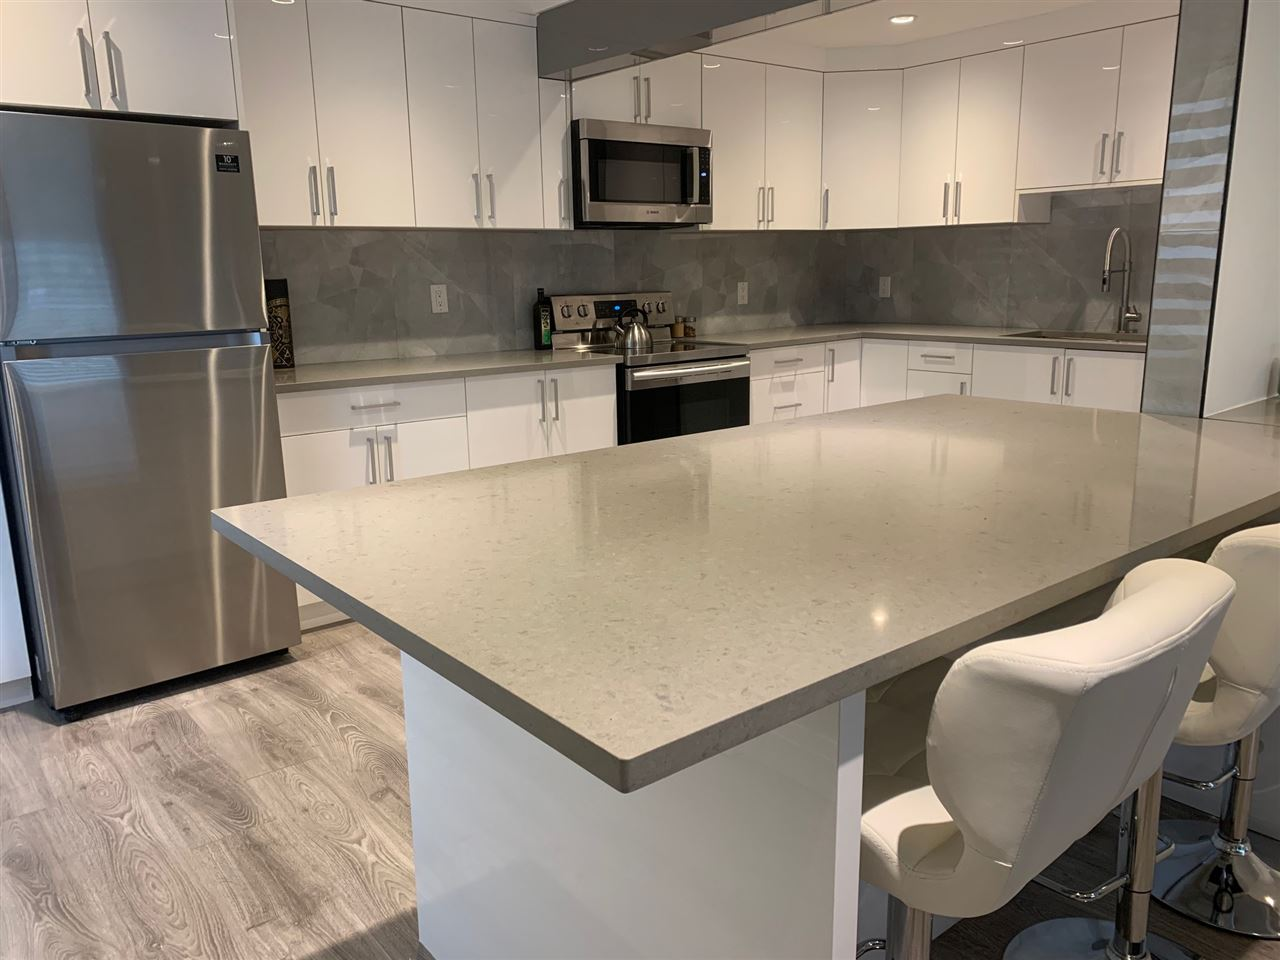 Check out this fully renovated END UNIT & GROUND FLOOR!!!  Its gorgeous & fells brand new and move in tomorrow! 2 bedrooms, master with a WI closet and huge window to let all the natural light in.  All new flooring in a modern light grey.  Kitchen is Stunning!!  Huge Island with all quartz countertops, SS appliances.  Great West facing patio with easy access in and out!  Central location and easy to view!  Call today!